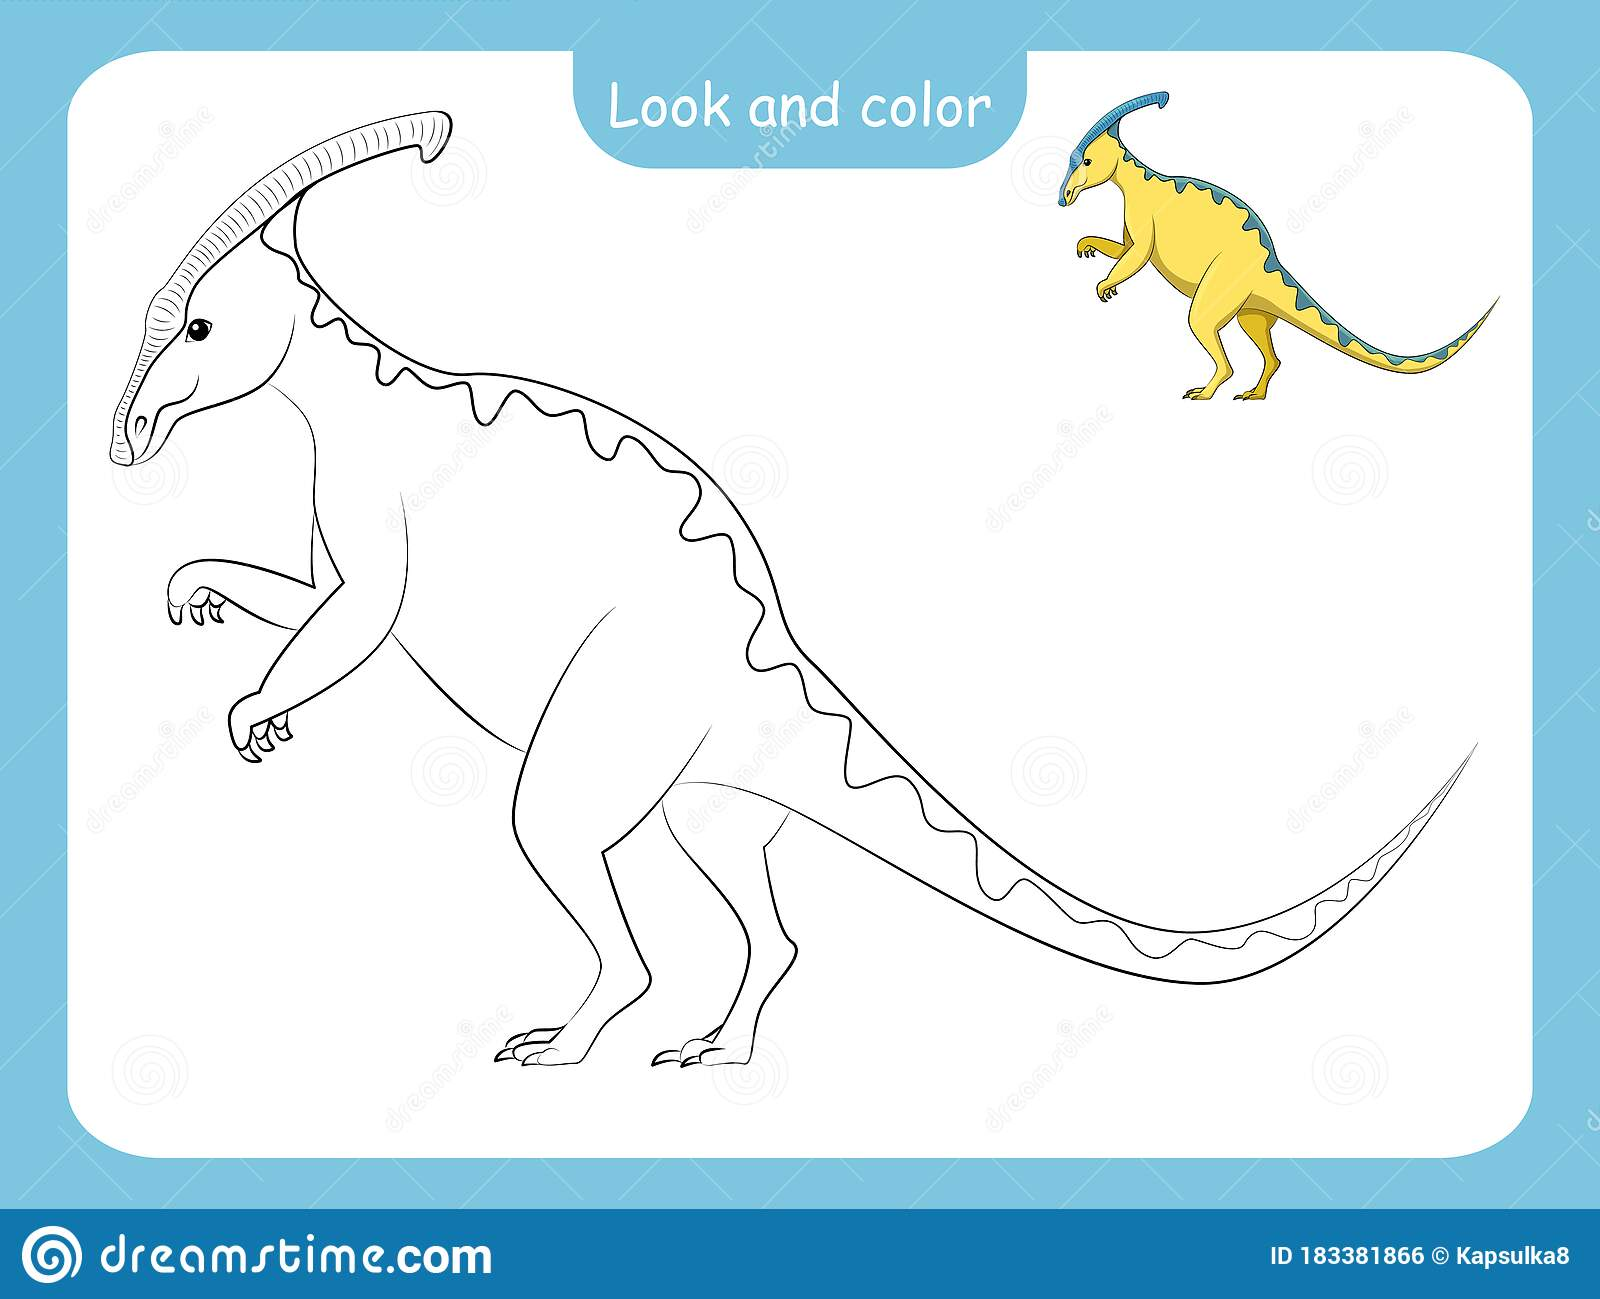 Coloring Page Outline Of Dinosaur With Colored Example